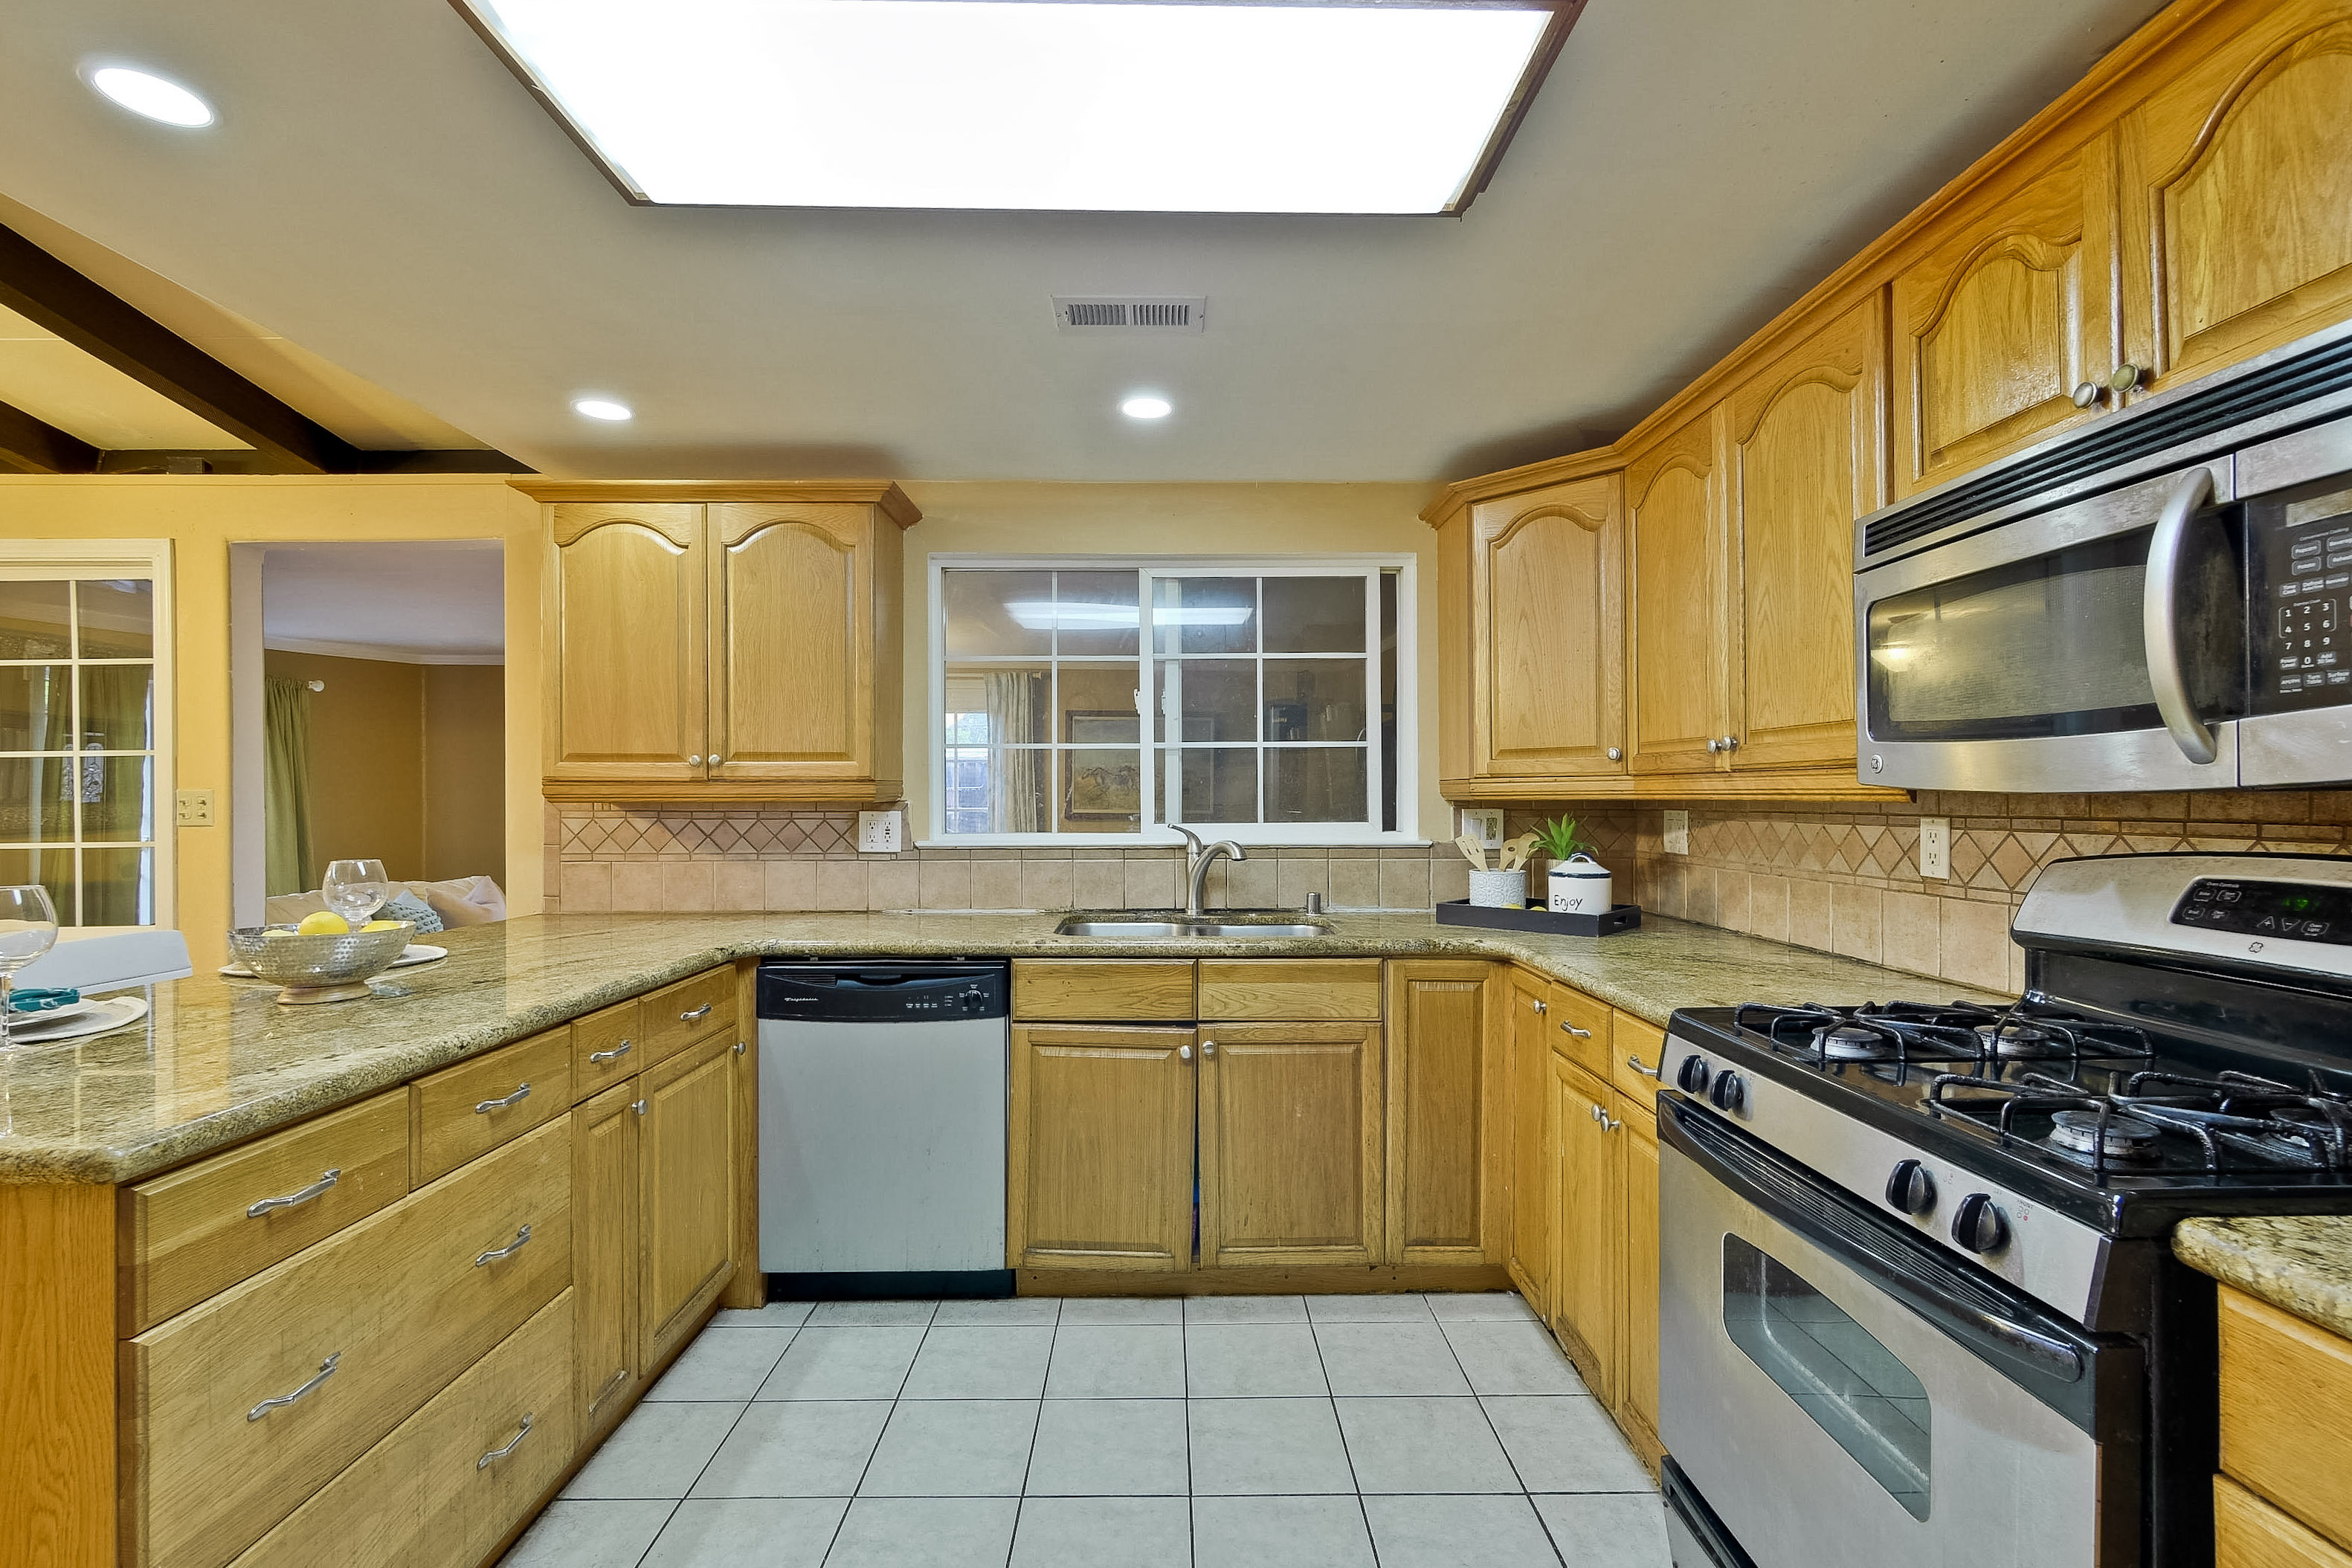 315 Meadowlake Dr, Sunnyvale 94089 - Kitchen (F)